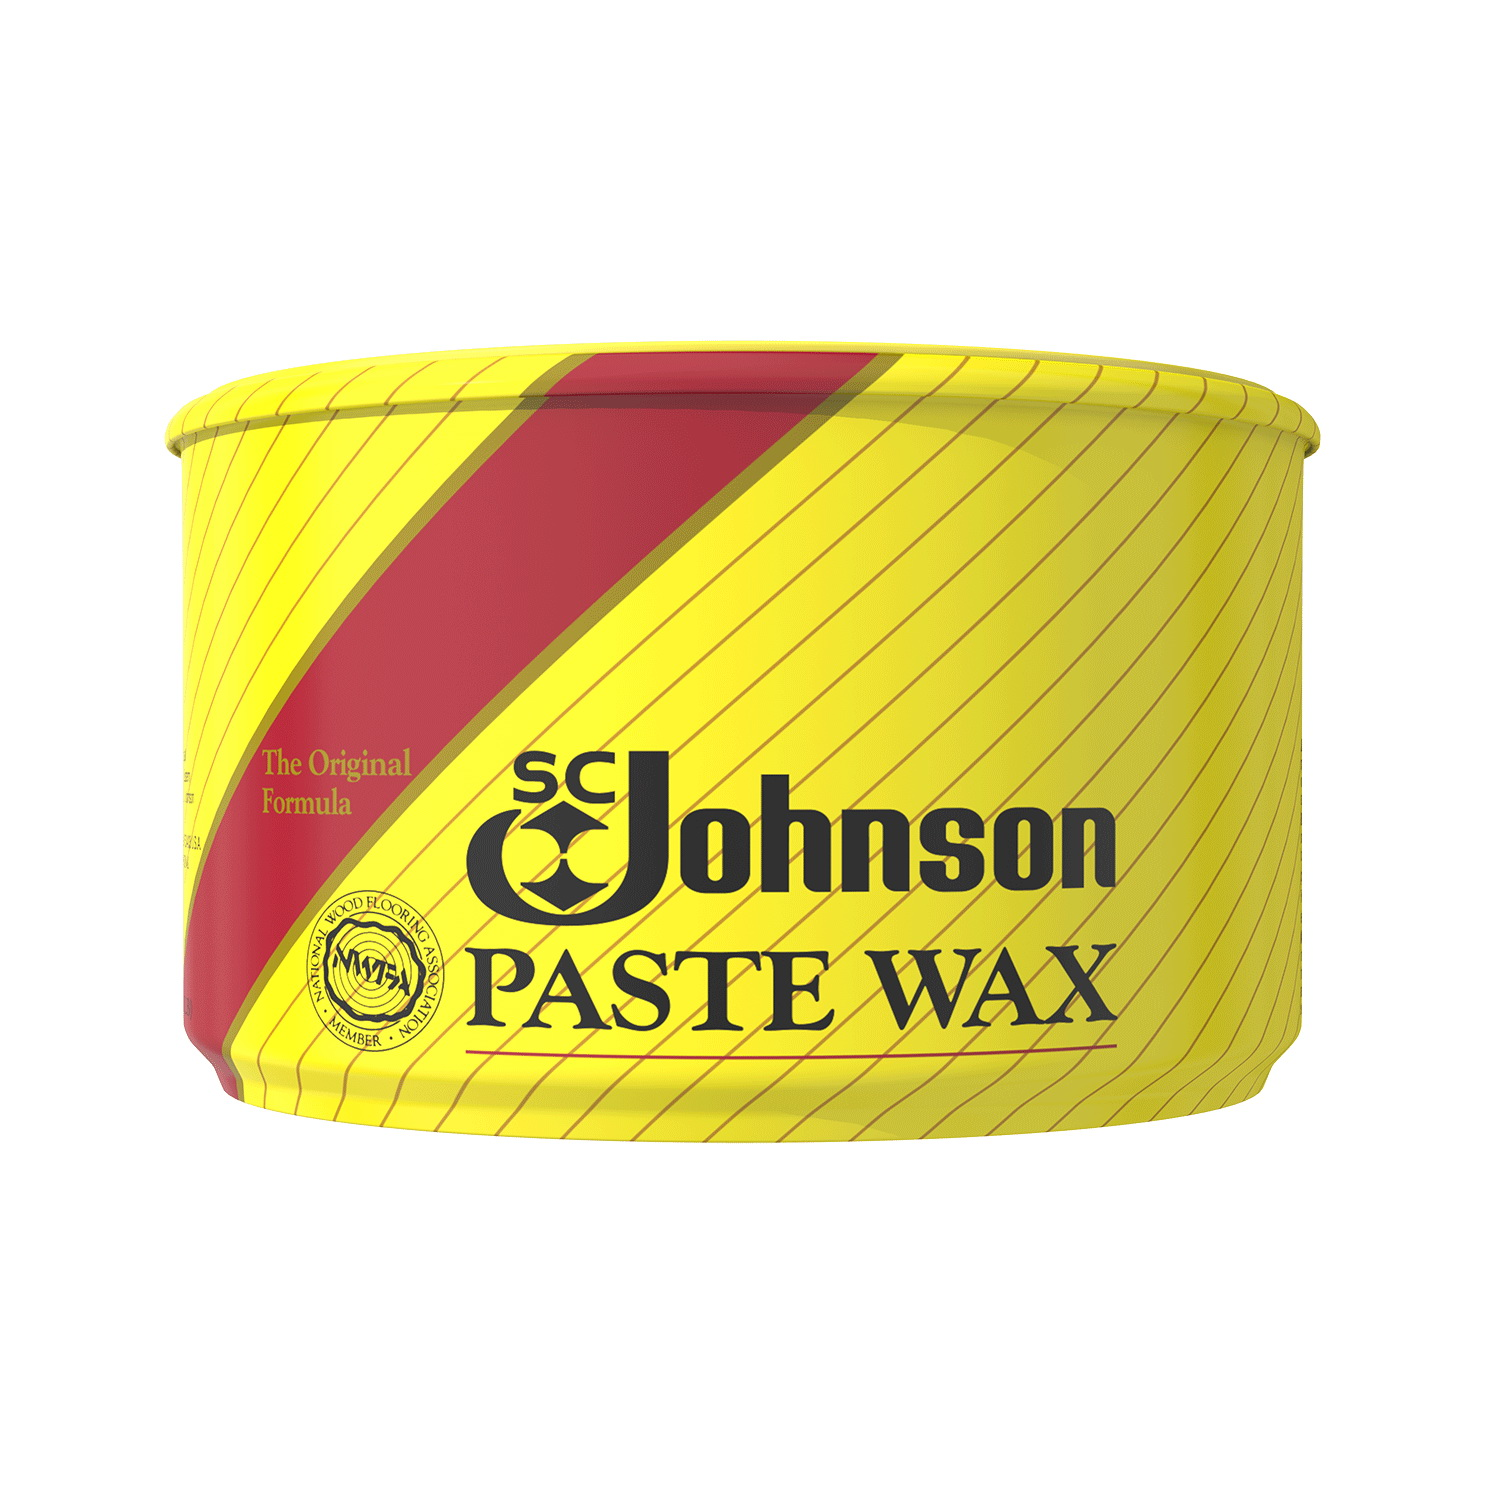 Picture of SC JOHNSON 000203 Paste Wax, Opaque, Solid, 1 lb, Tin